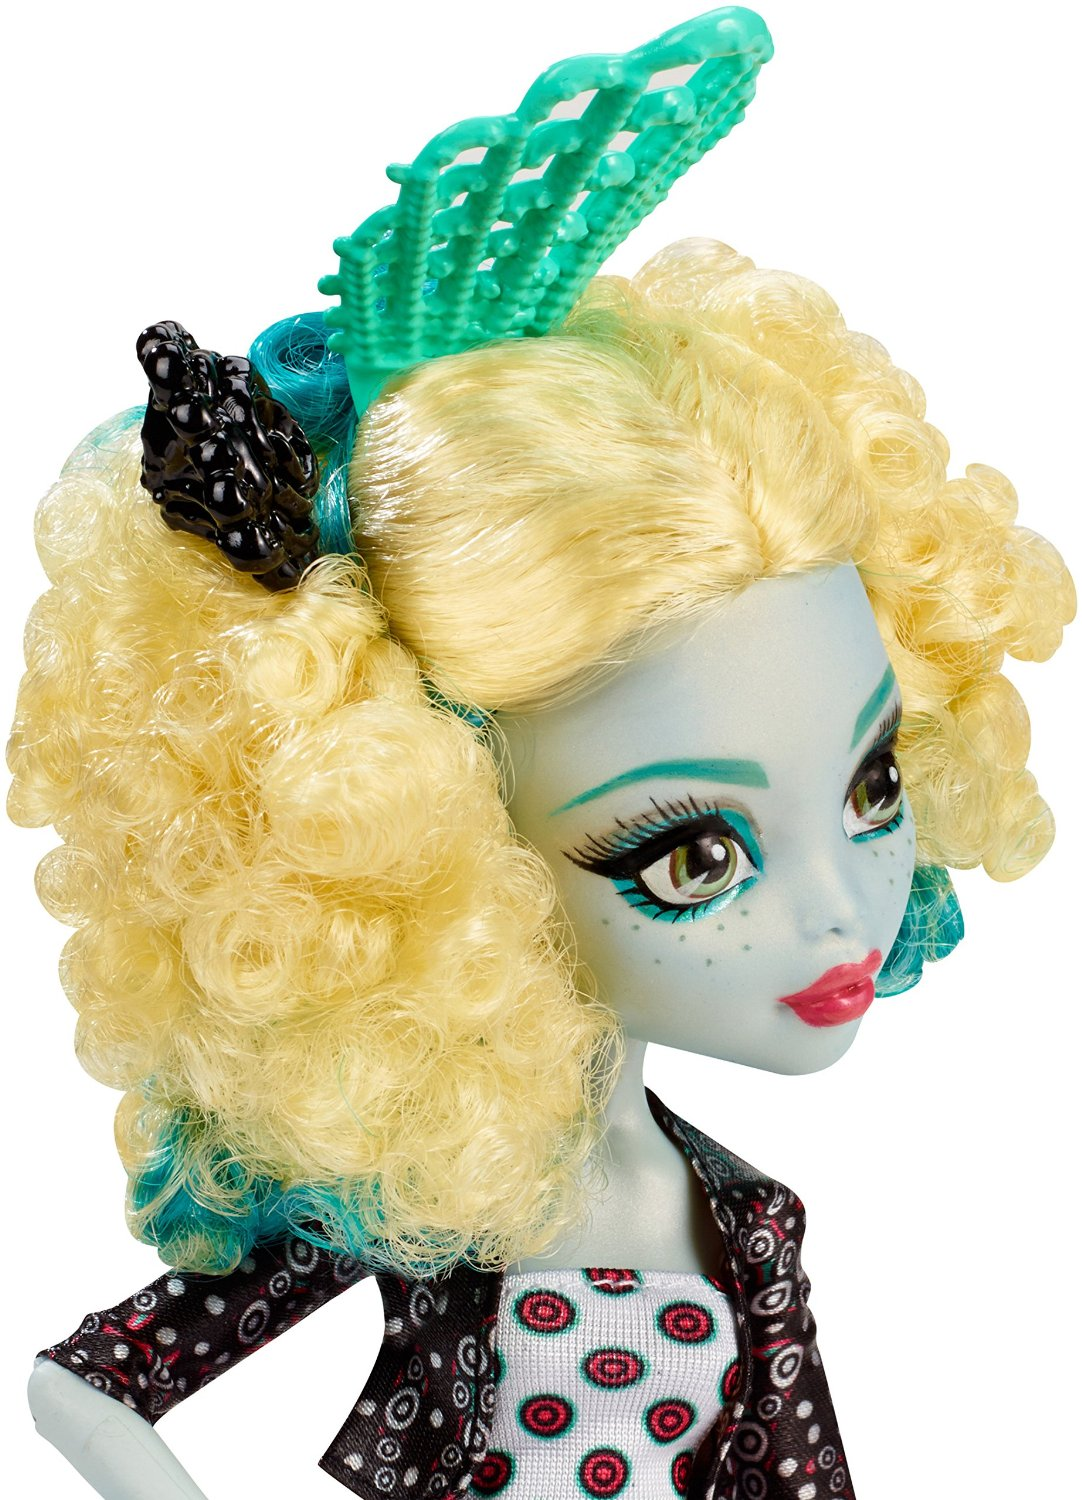 Tieu quai vat bien di du lich Monster High